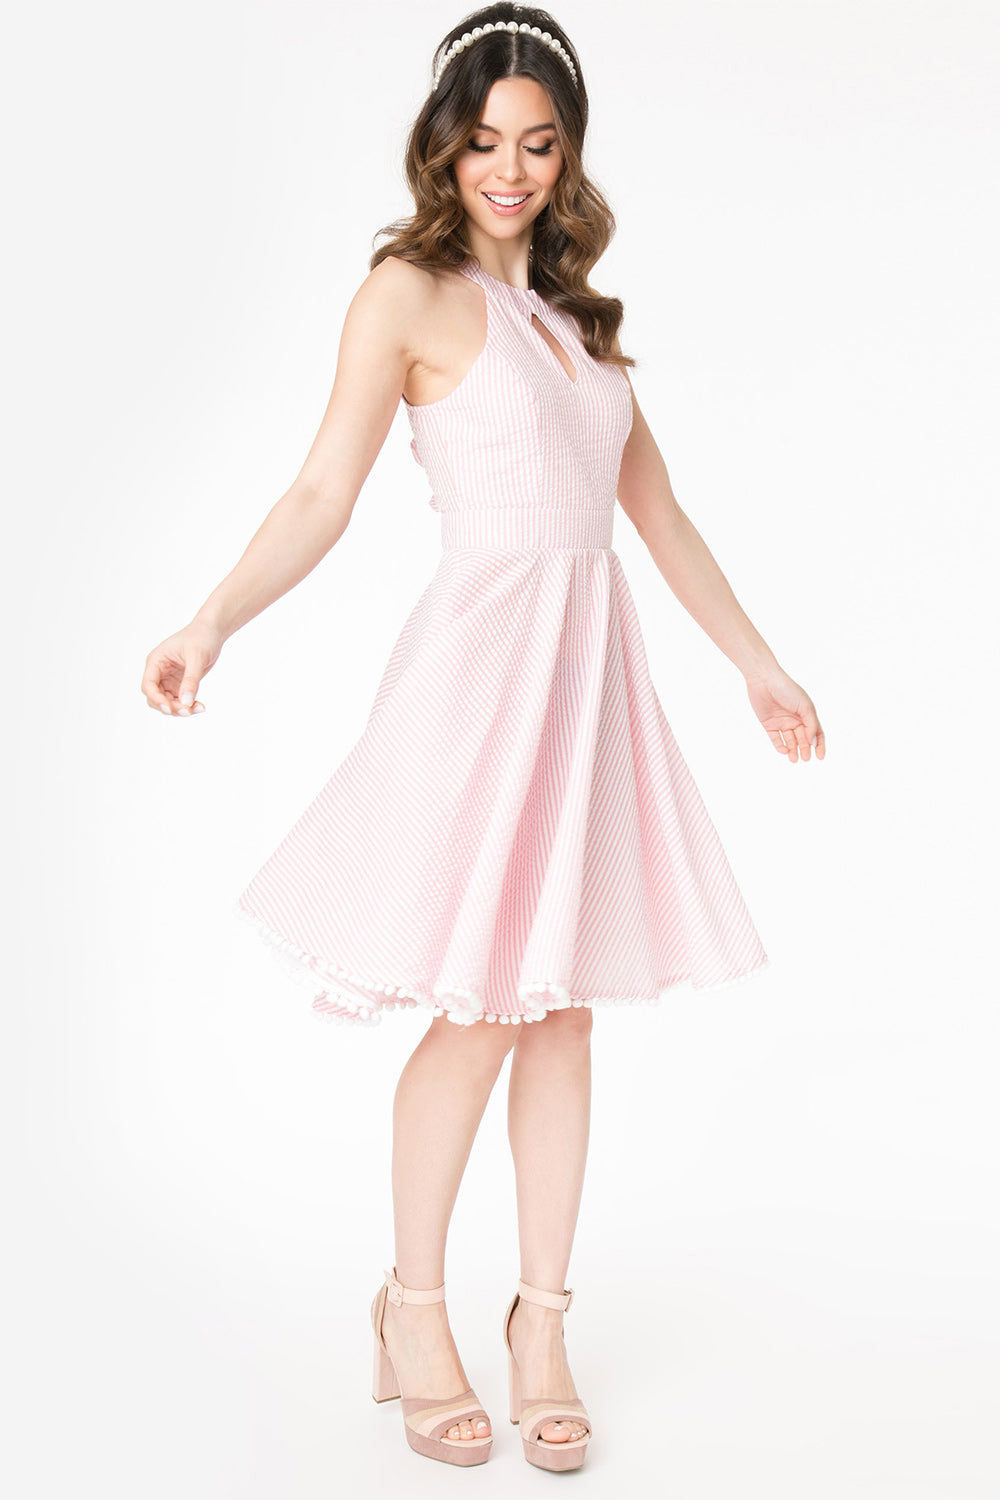 Pink Seersucker Halter Make Me Over Dress by Smak Parlour